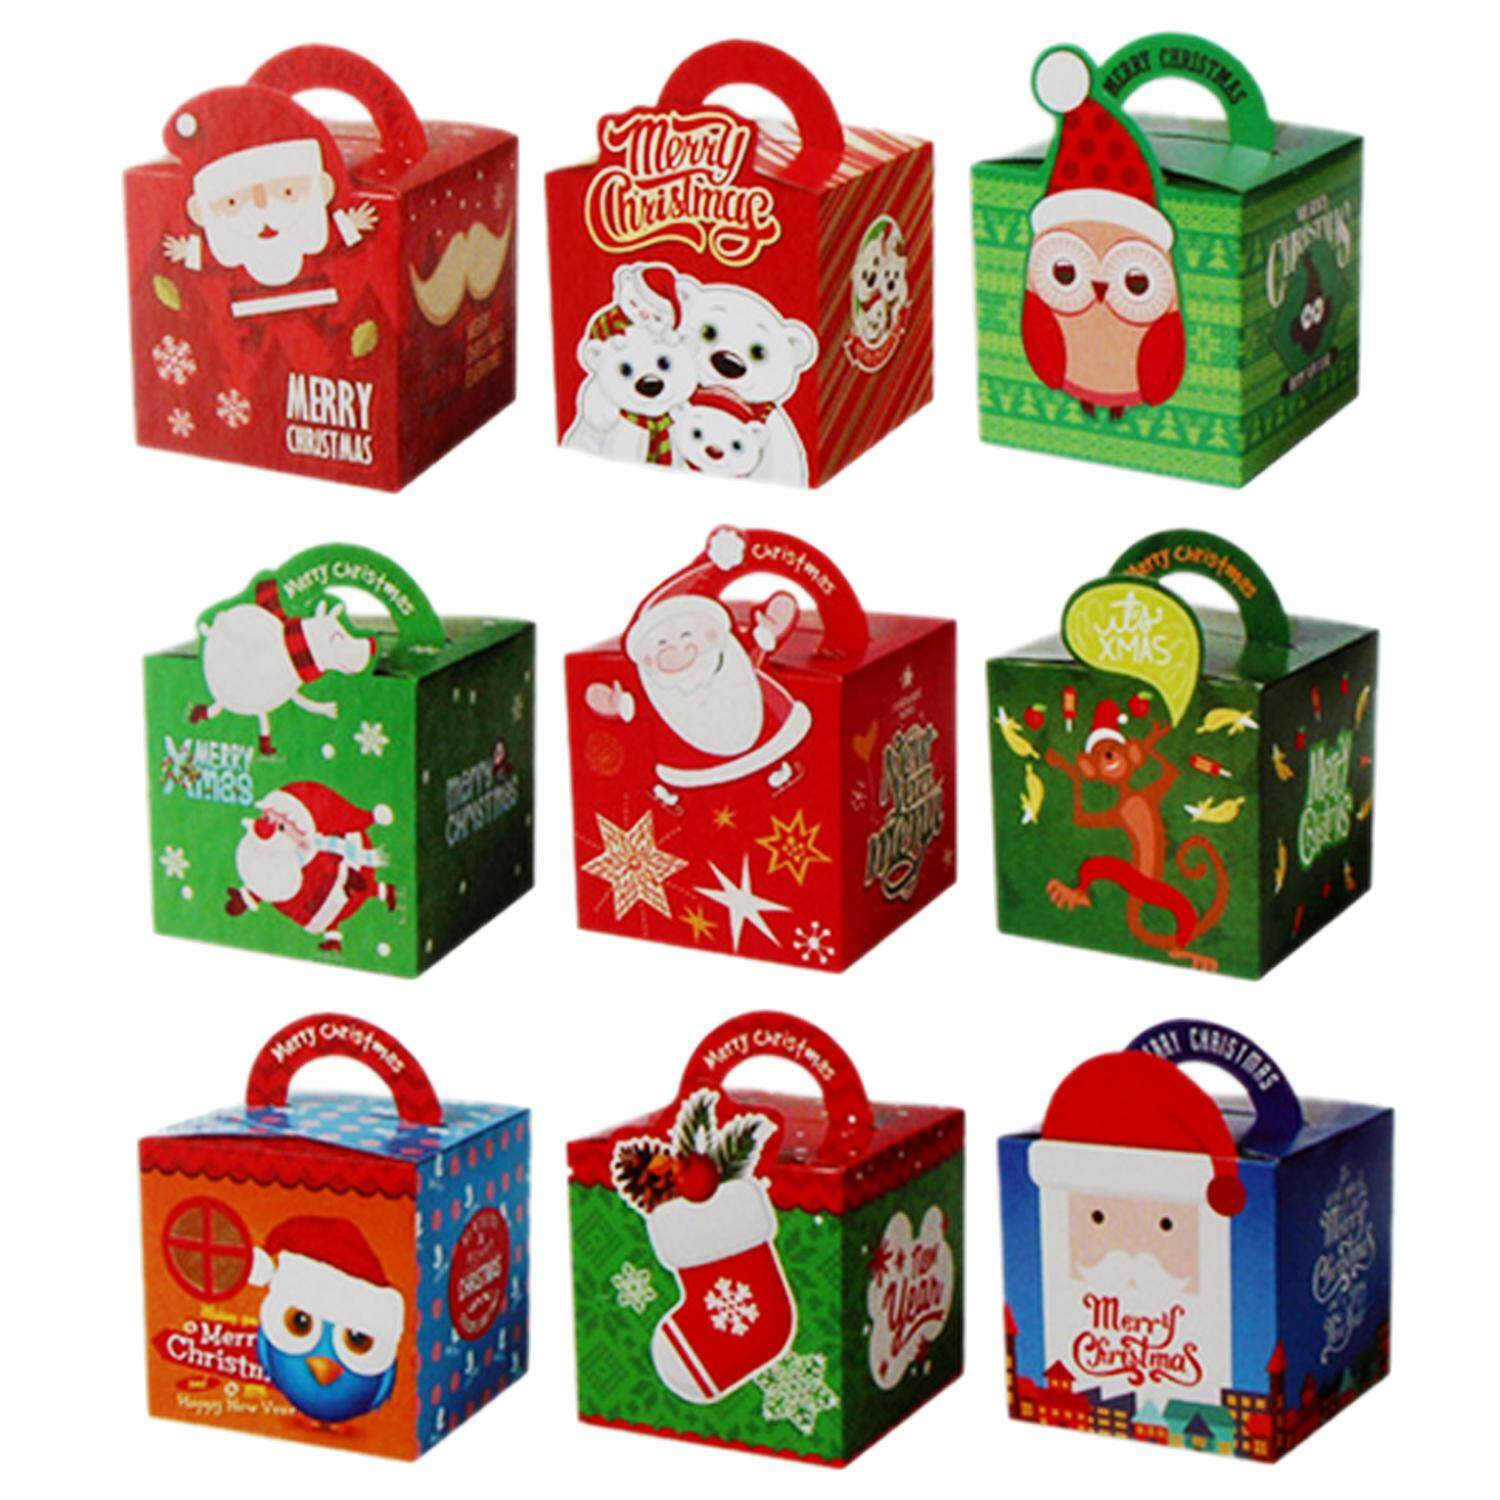 50PCS Assorted Style Merry Christmas Candy Fruit Gift Present Paper Boxes with Handle for Festival Holiday Party Supplies